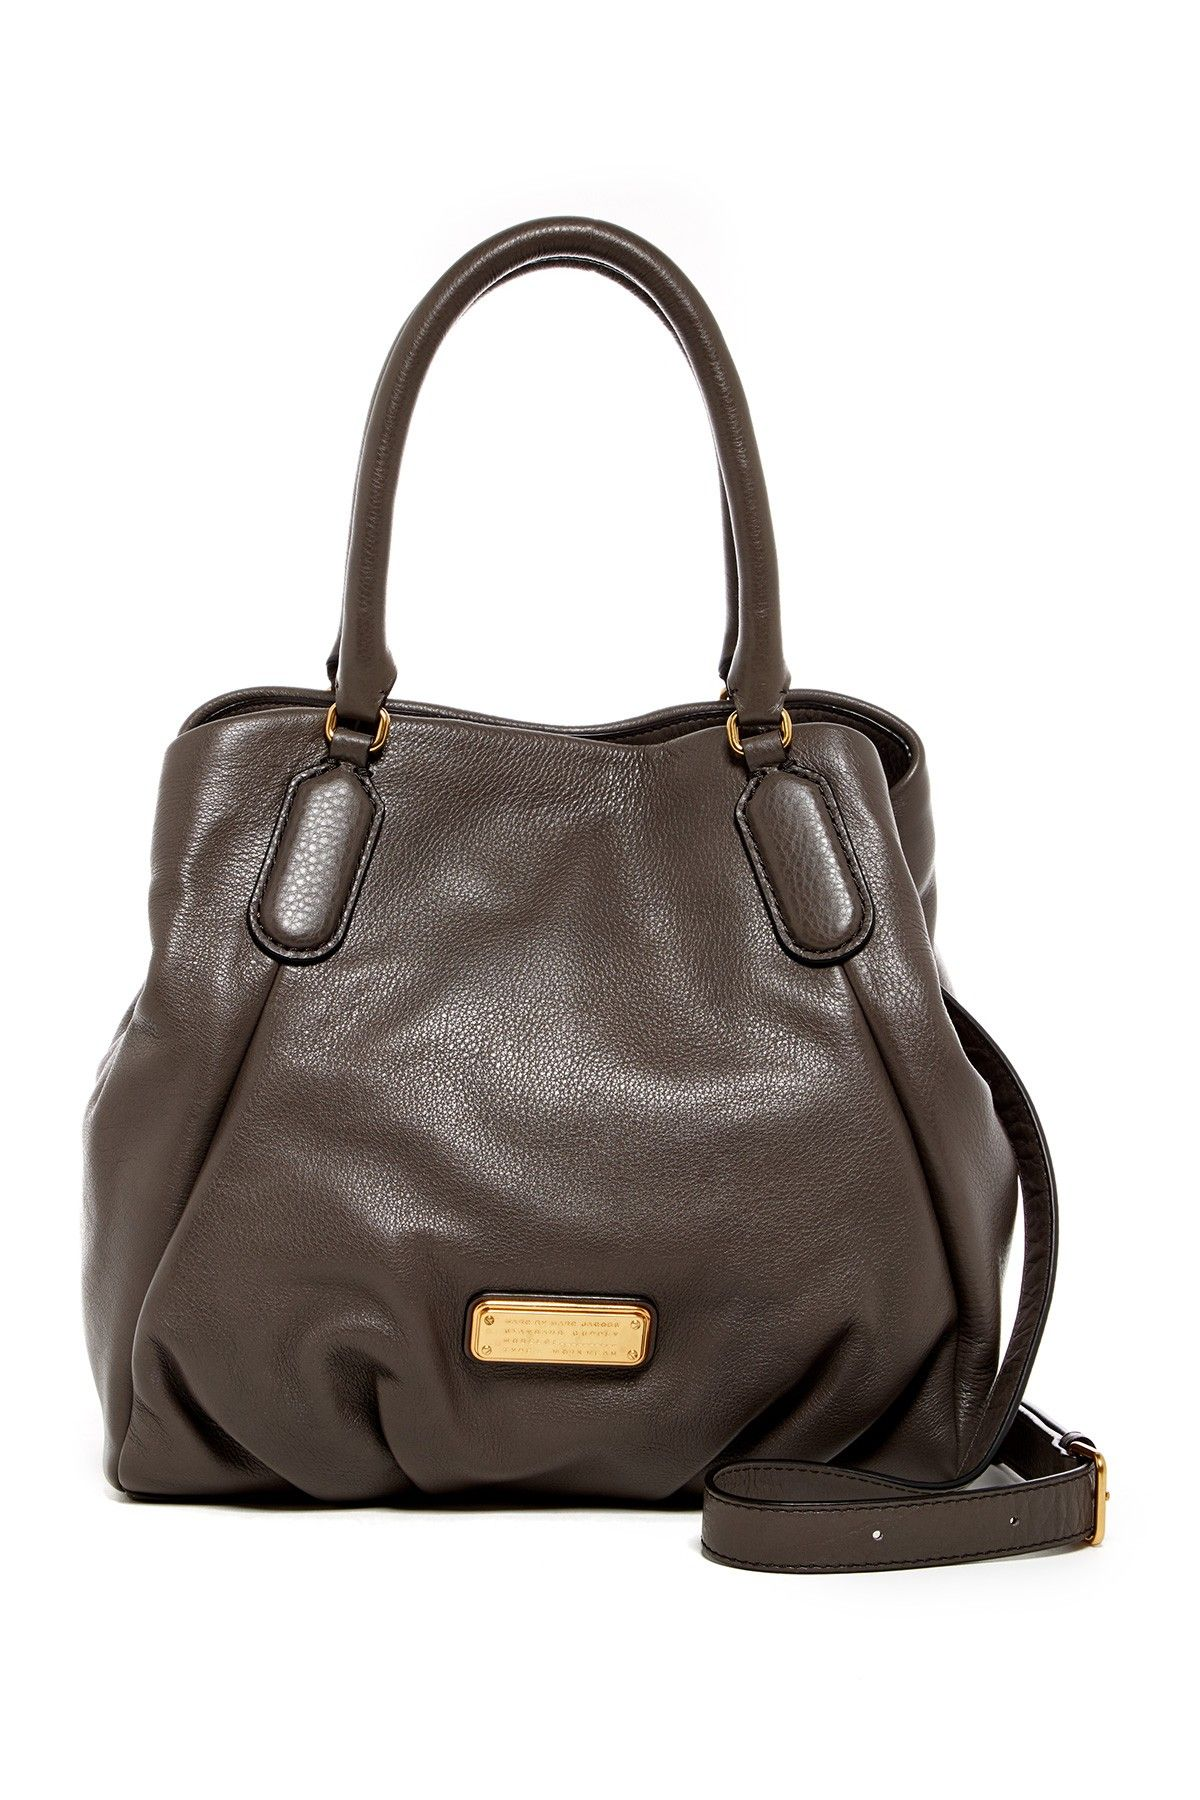 New Q Fran Leather Satchel by Marc by Marc Jacobs on @nordstrom_rack